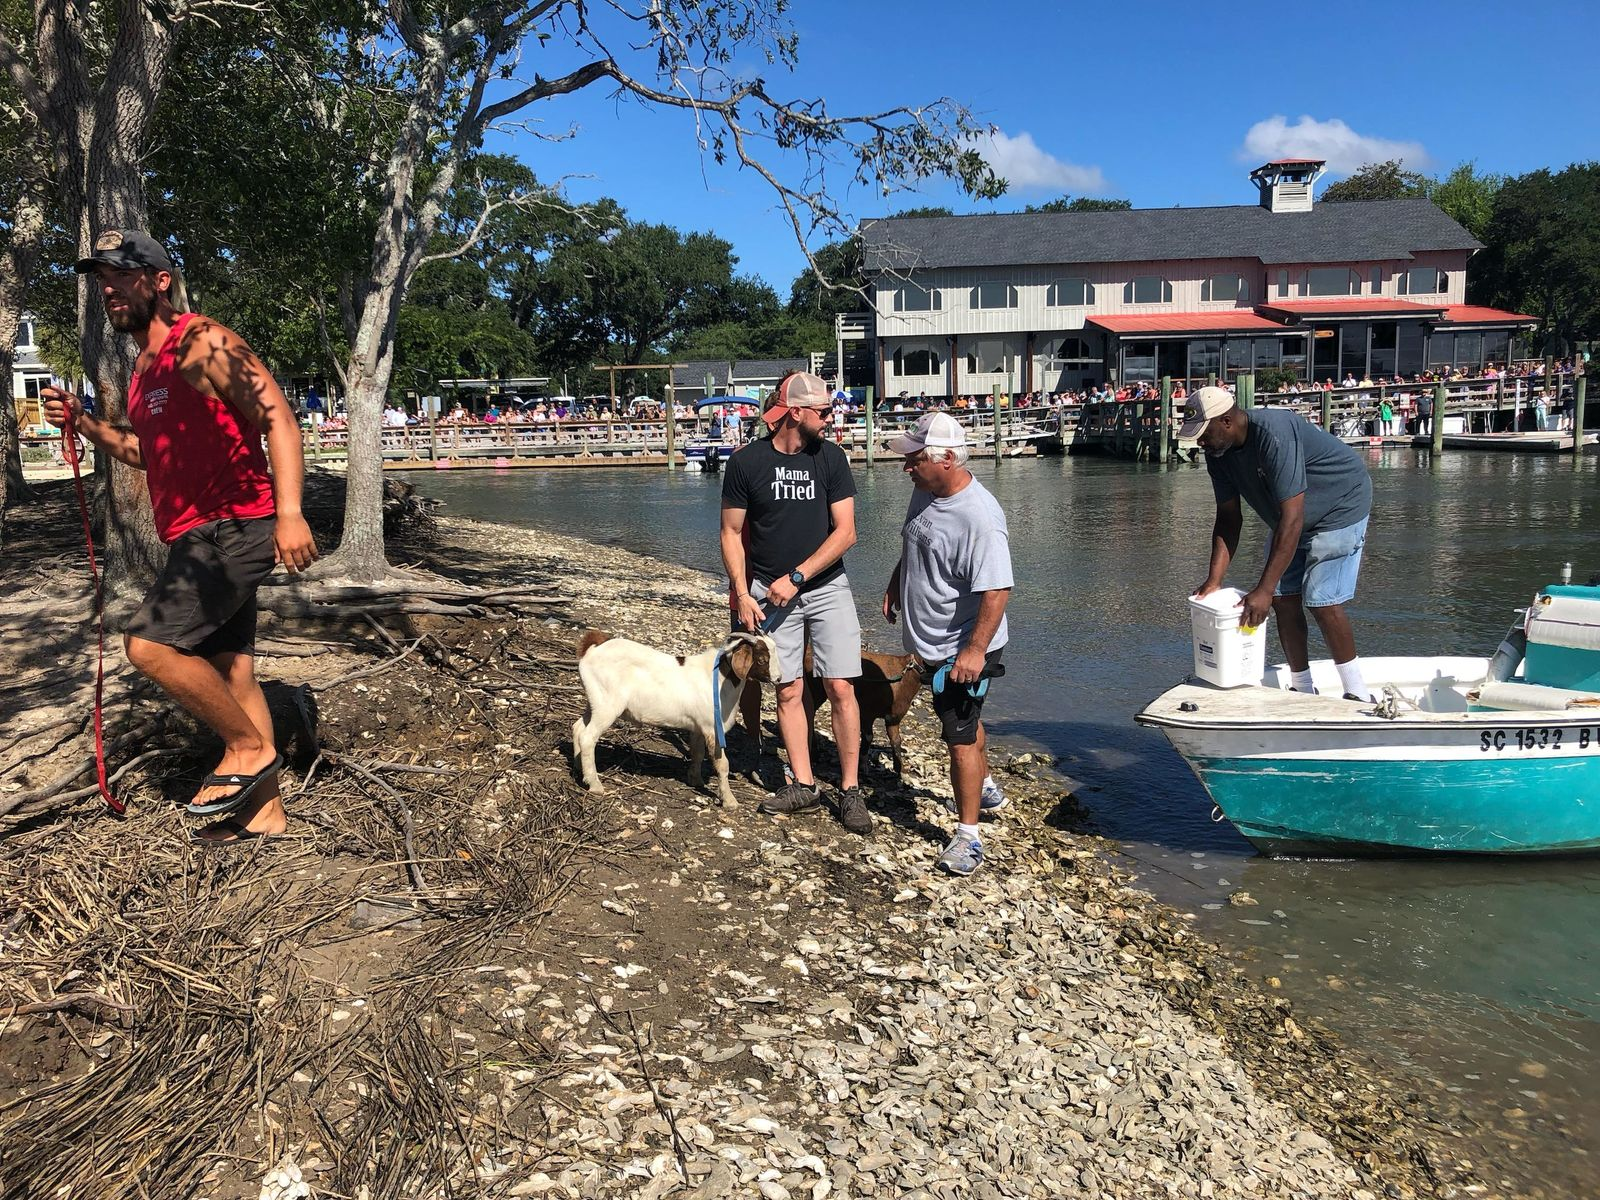 The occupants of goat island were brought ashore ahead of Hurricane Dorian, Sept. 3, 2019. (Credit: Amanda Kinseth/WPDE)